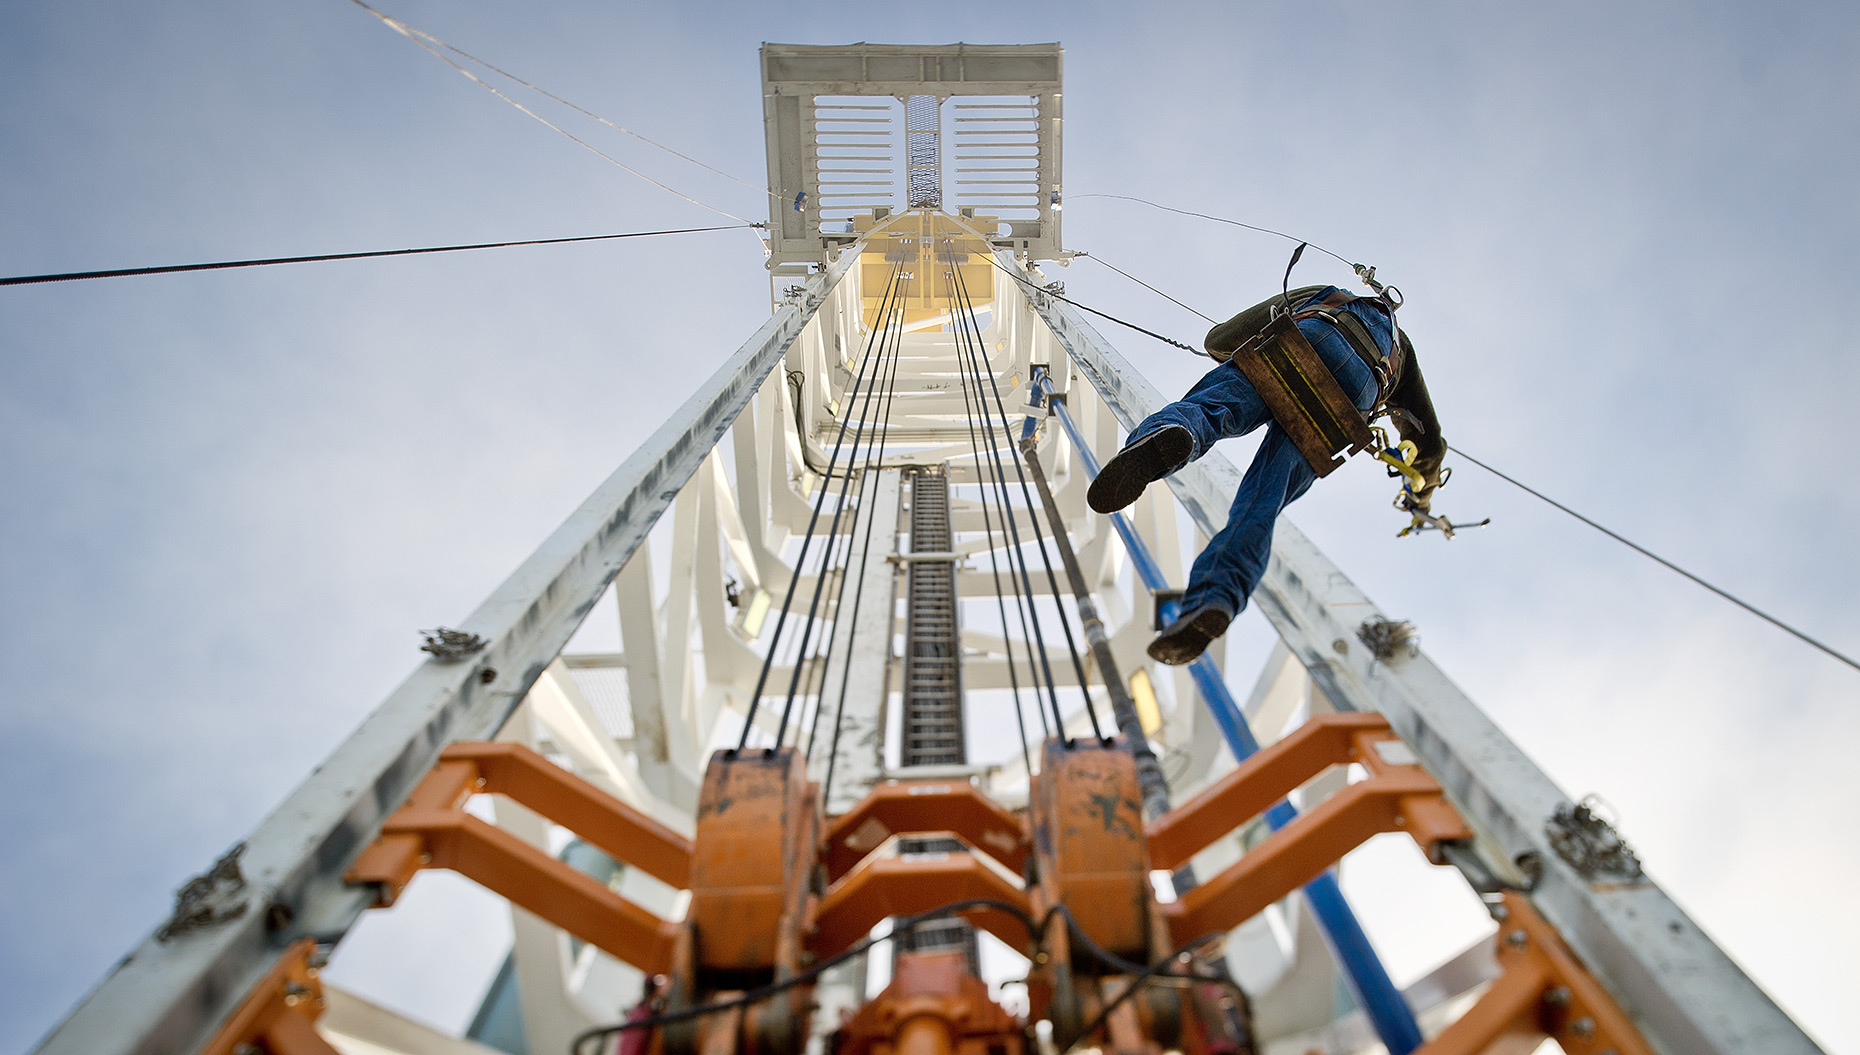 Oil Rig Worker Photograph